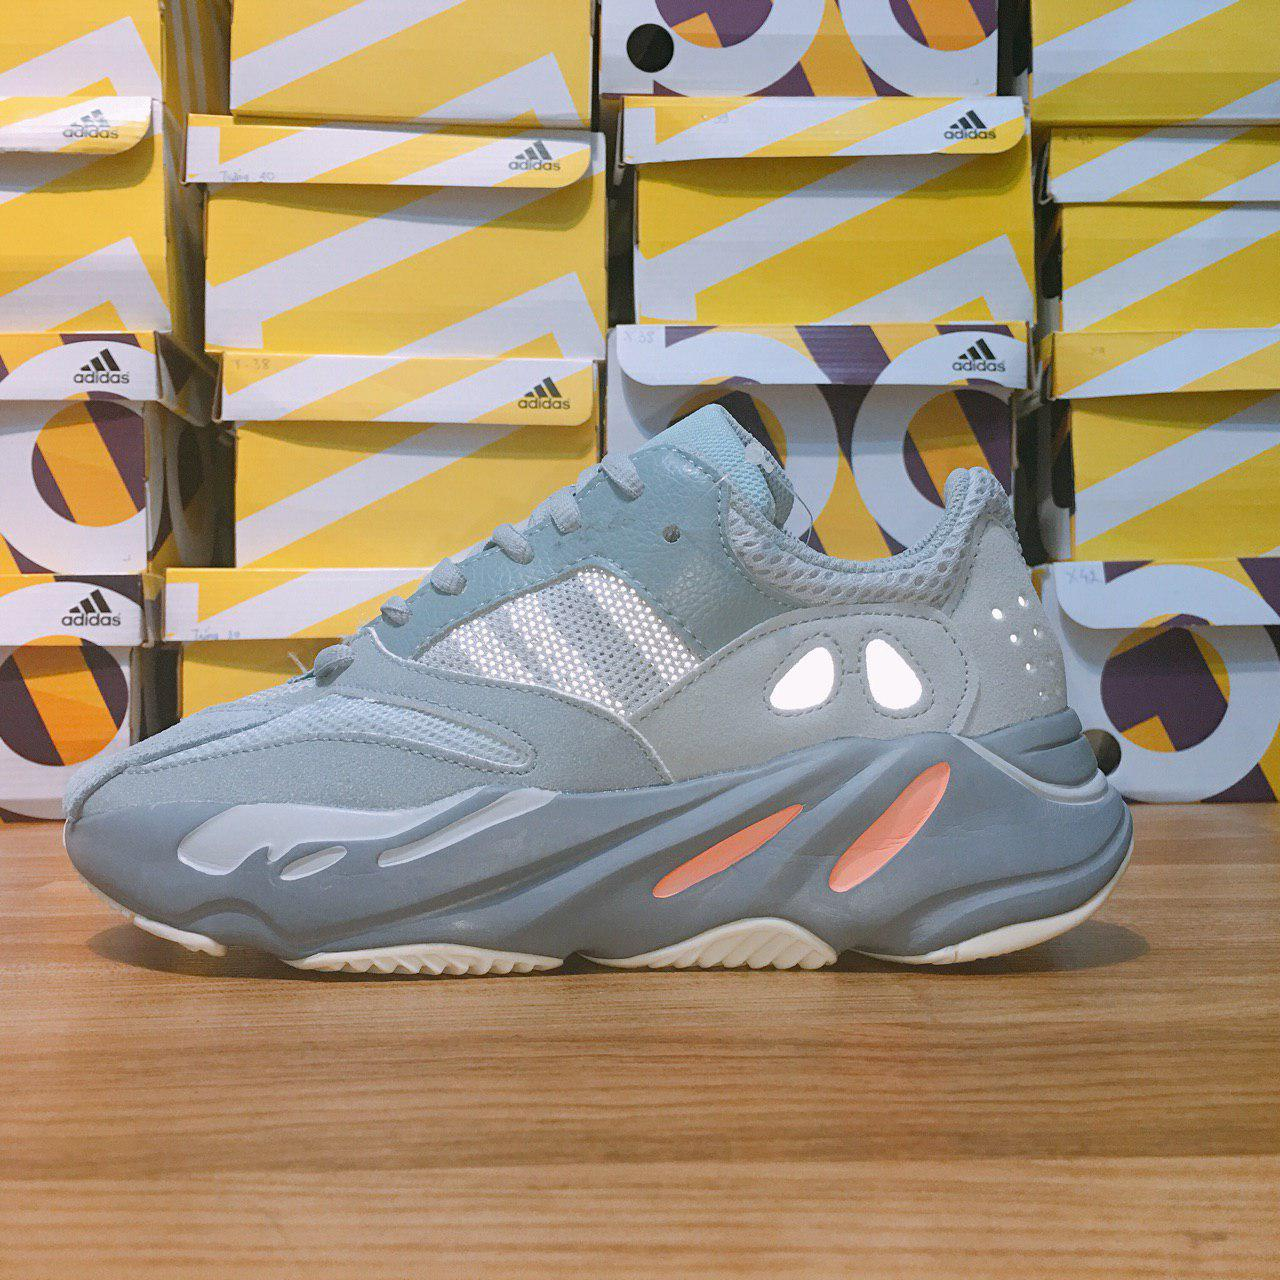 YEEZY 700 SILVER